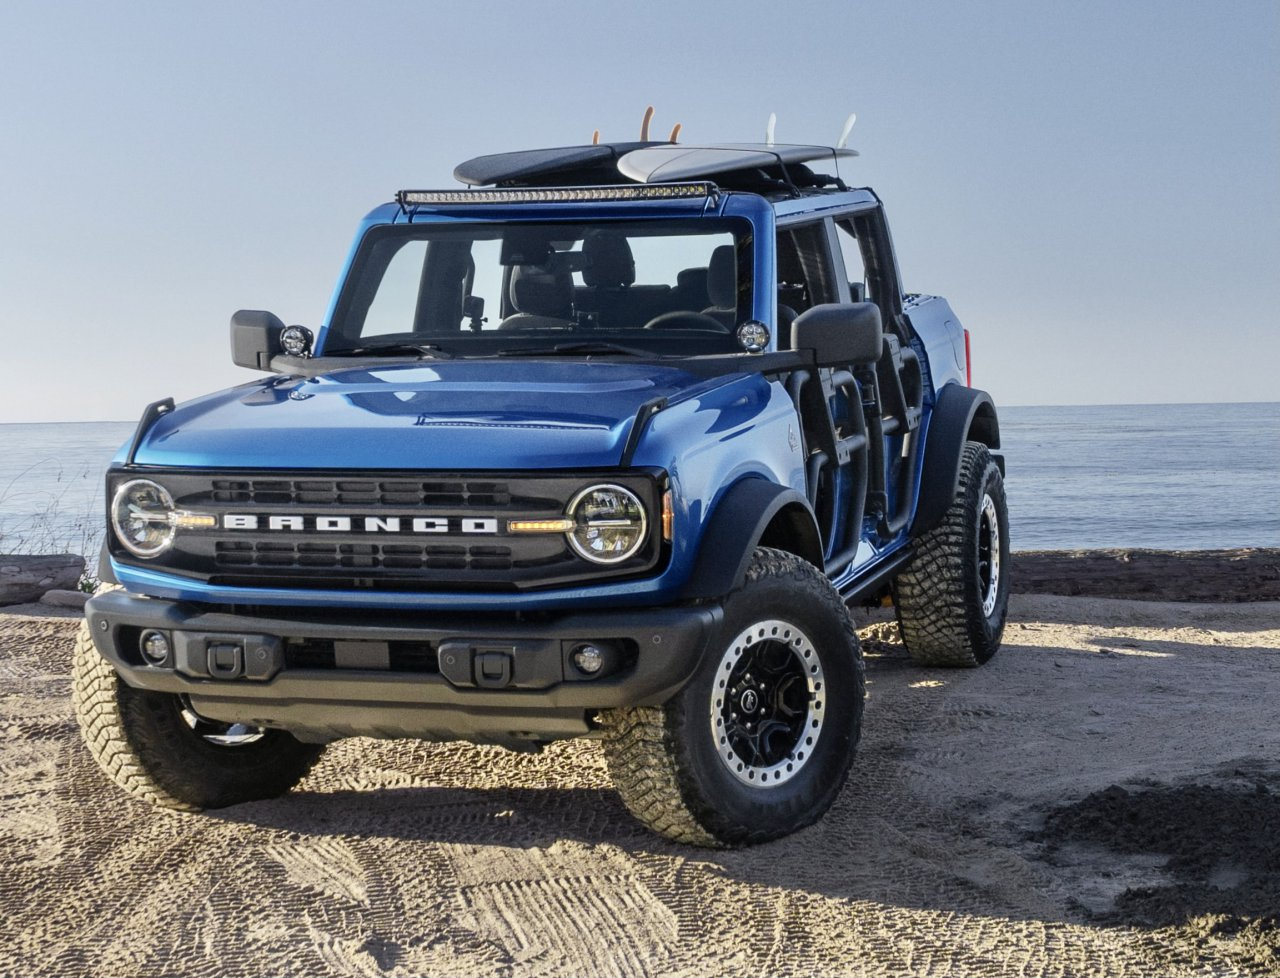 Bronco, Ford hopes Bronco Riptide inspires customer-vehicle customization, ClassicCars.com Journal